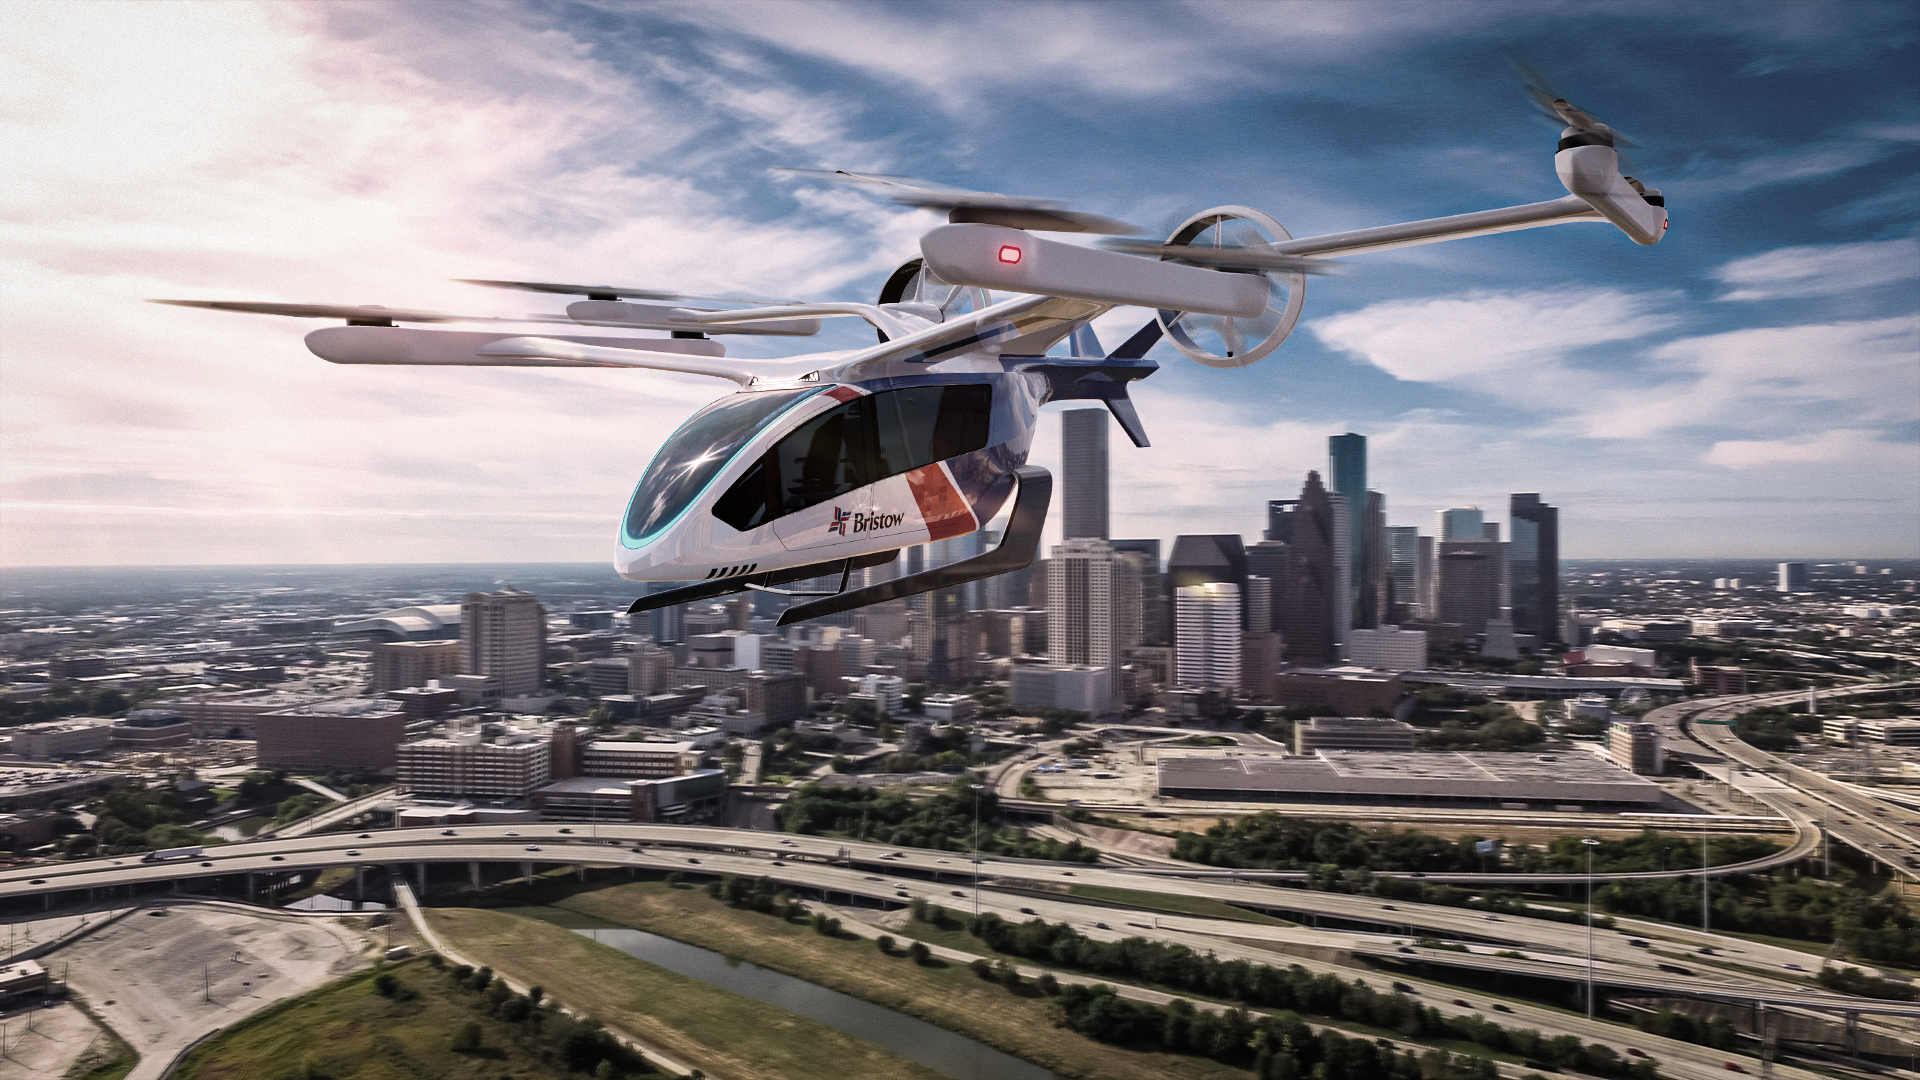 Eve's community-friendly zero-emission and low noise eVTOL is based upon a simple and intuitive human-centric design. Click the image to download a high resolution image.